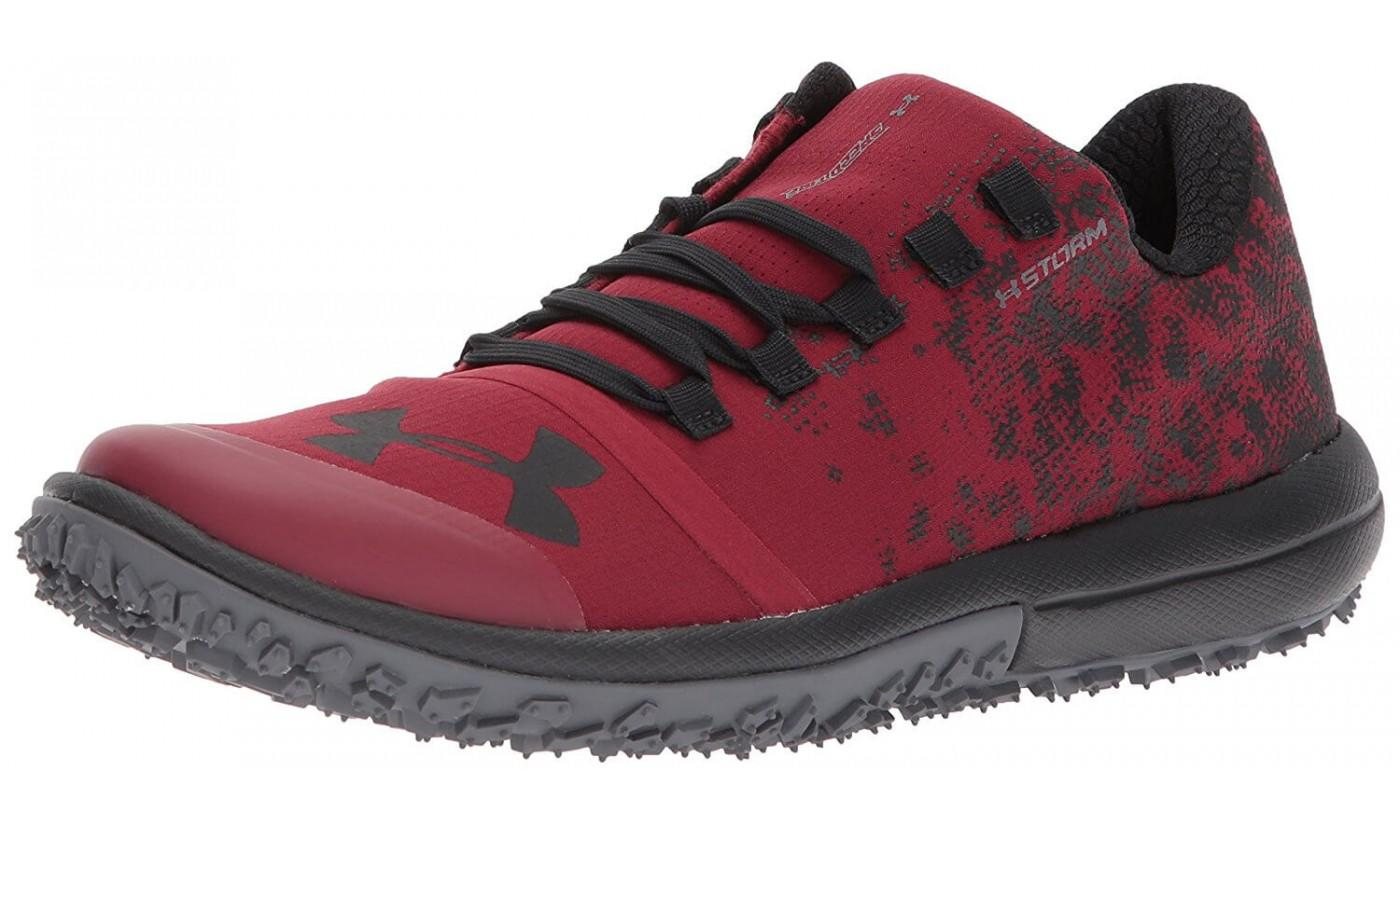 The Under Armour Speed Tire Acent Low features a low profile and aggressive outsole for fast runs on tough terrain.